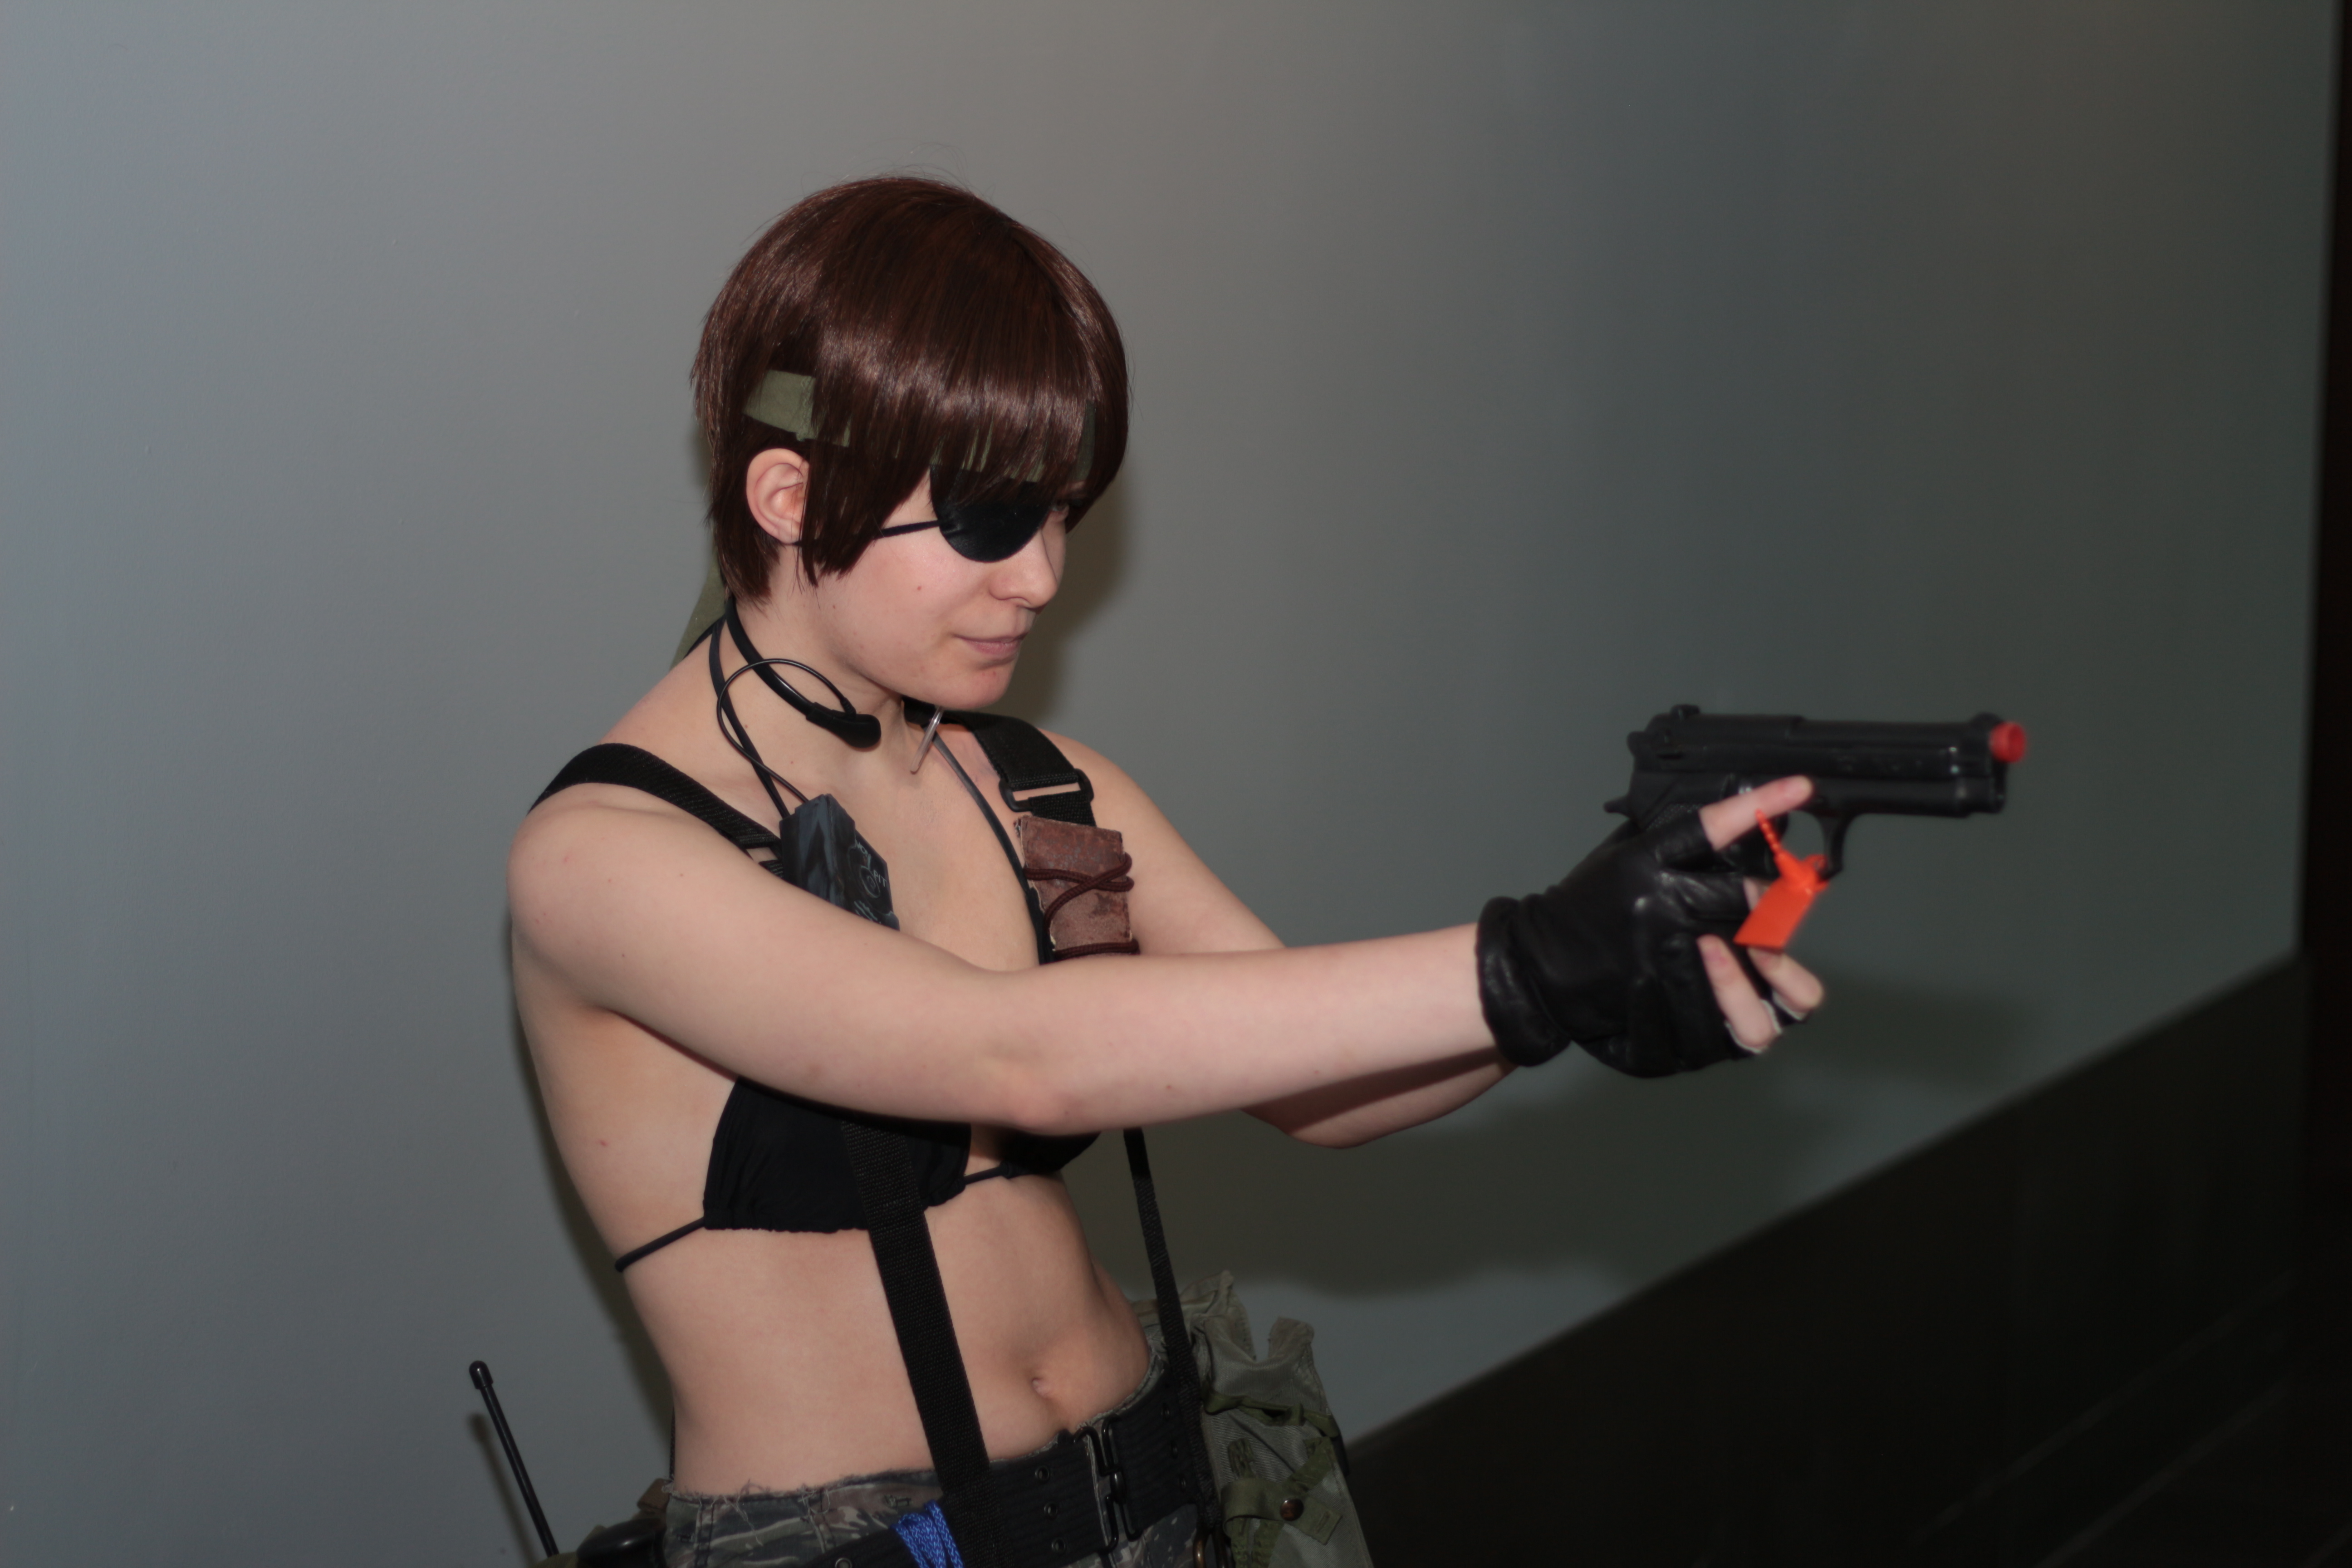 Anime Boston 2013 - Metal Gear Solid Photoshoot 19 by VideoGameStupid